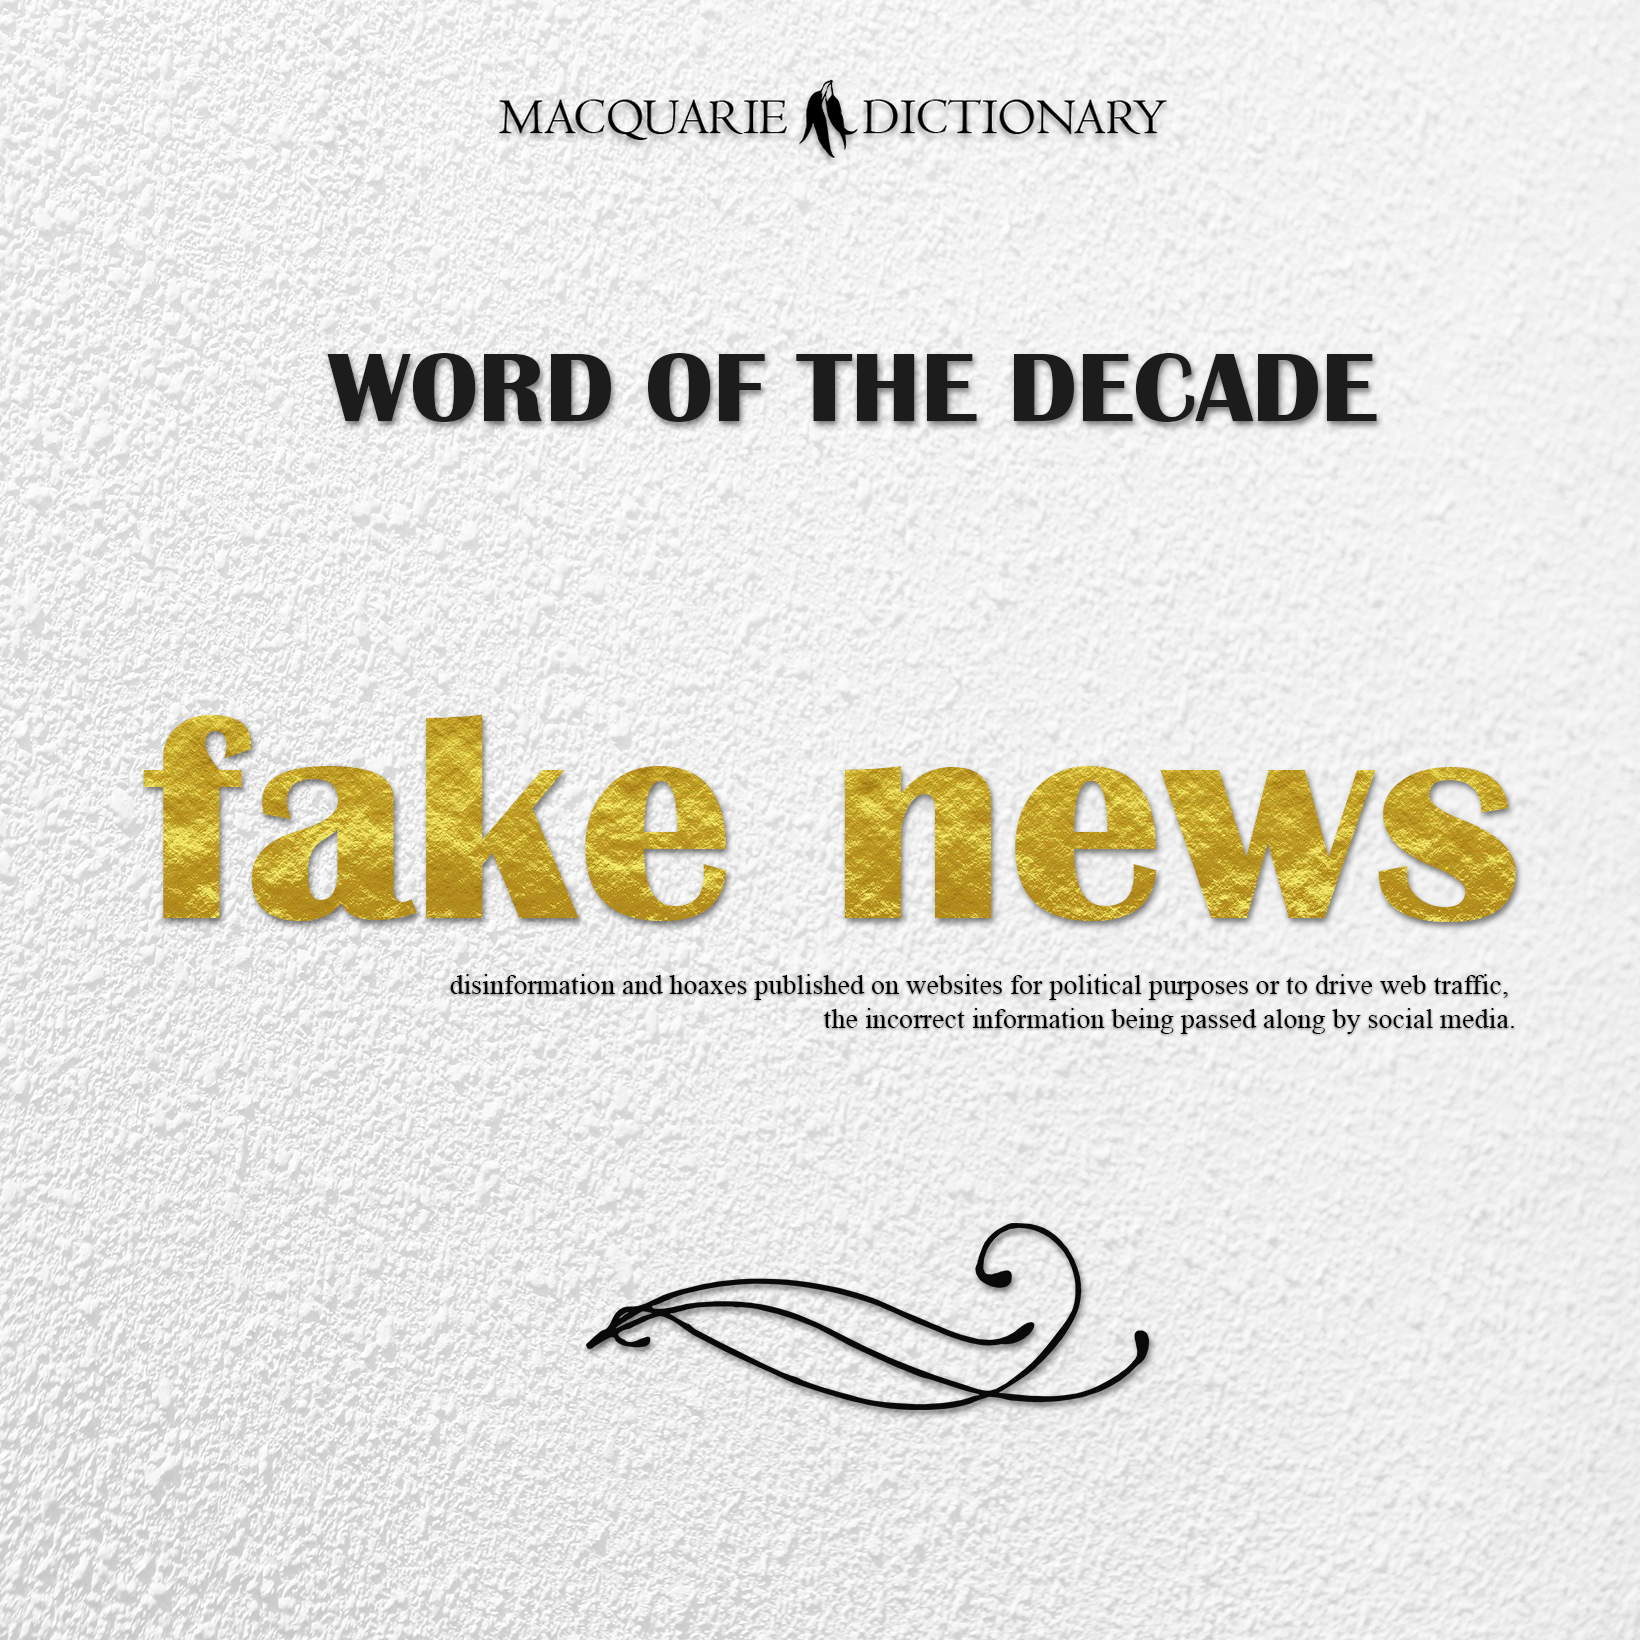 fake news - disinformation and hoaxes published on websites for political purposes or to drive web traffic, the incorrect information being passed along by social media.